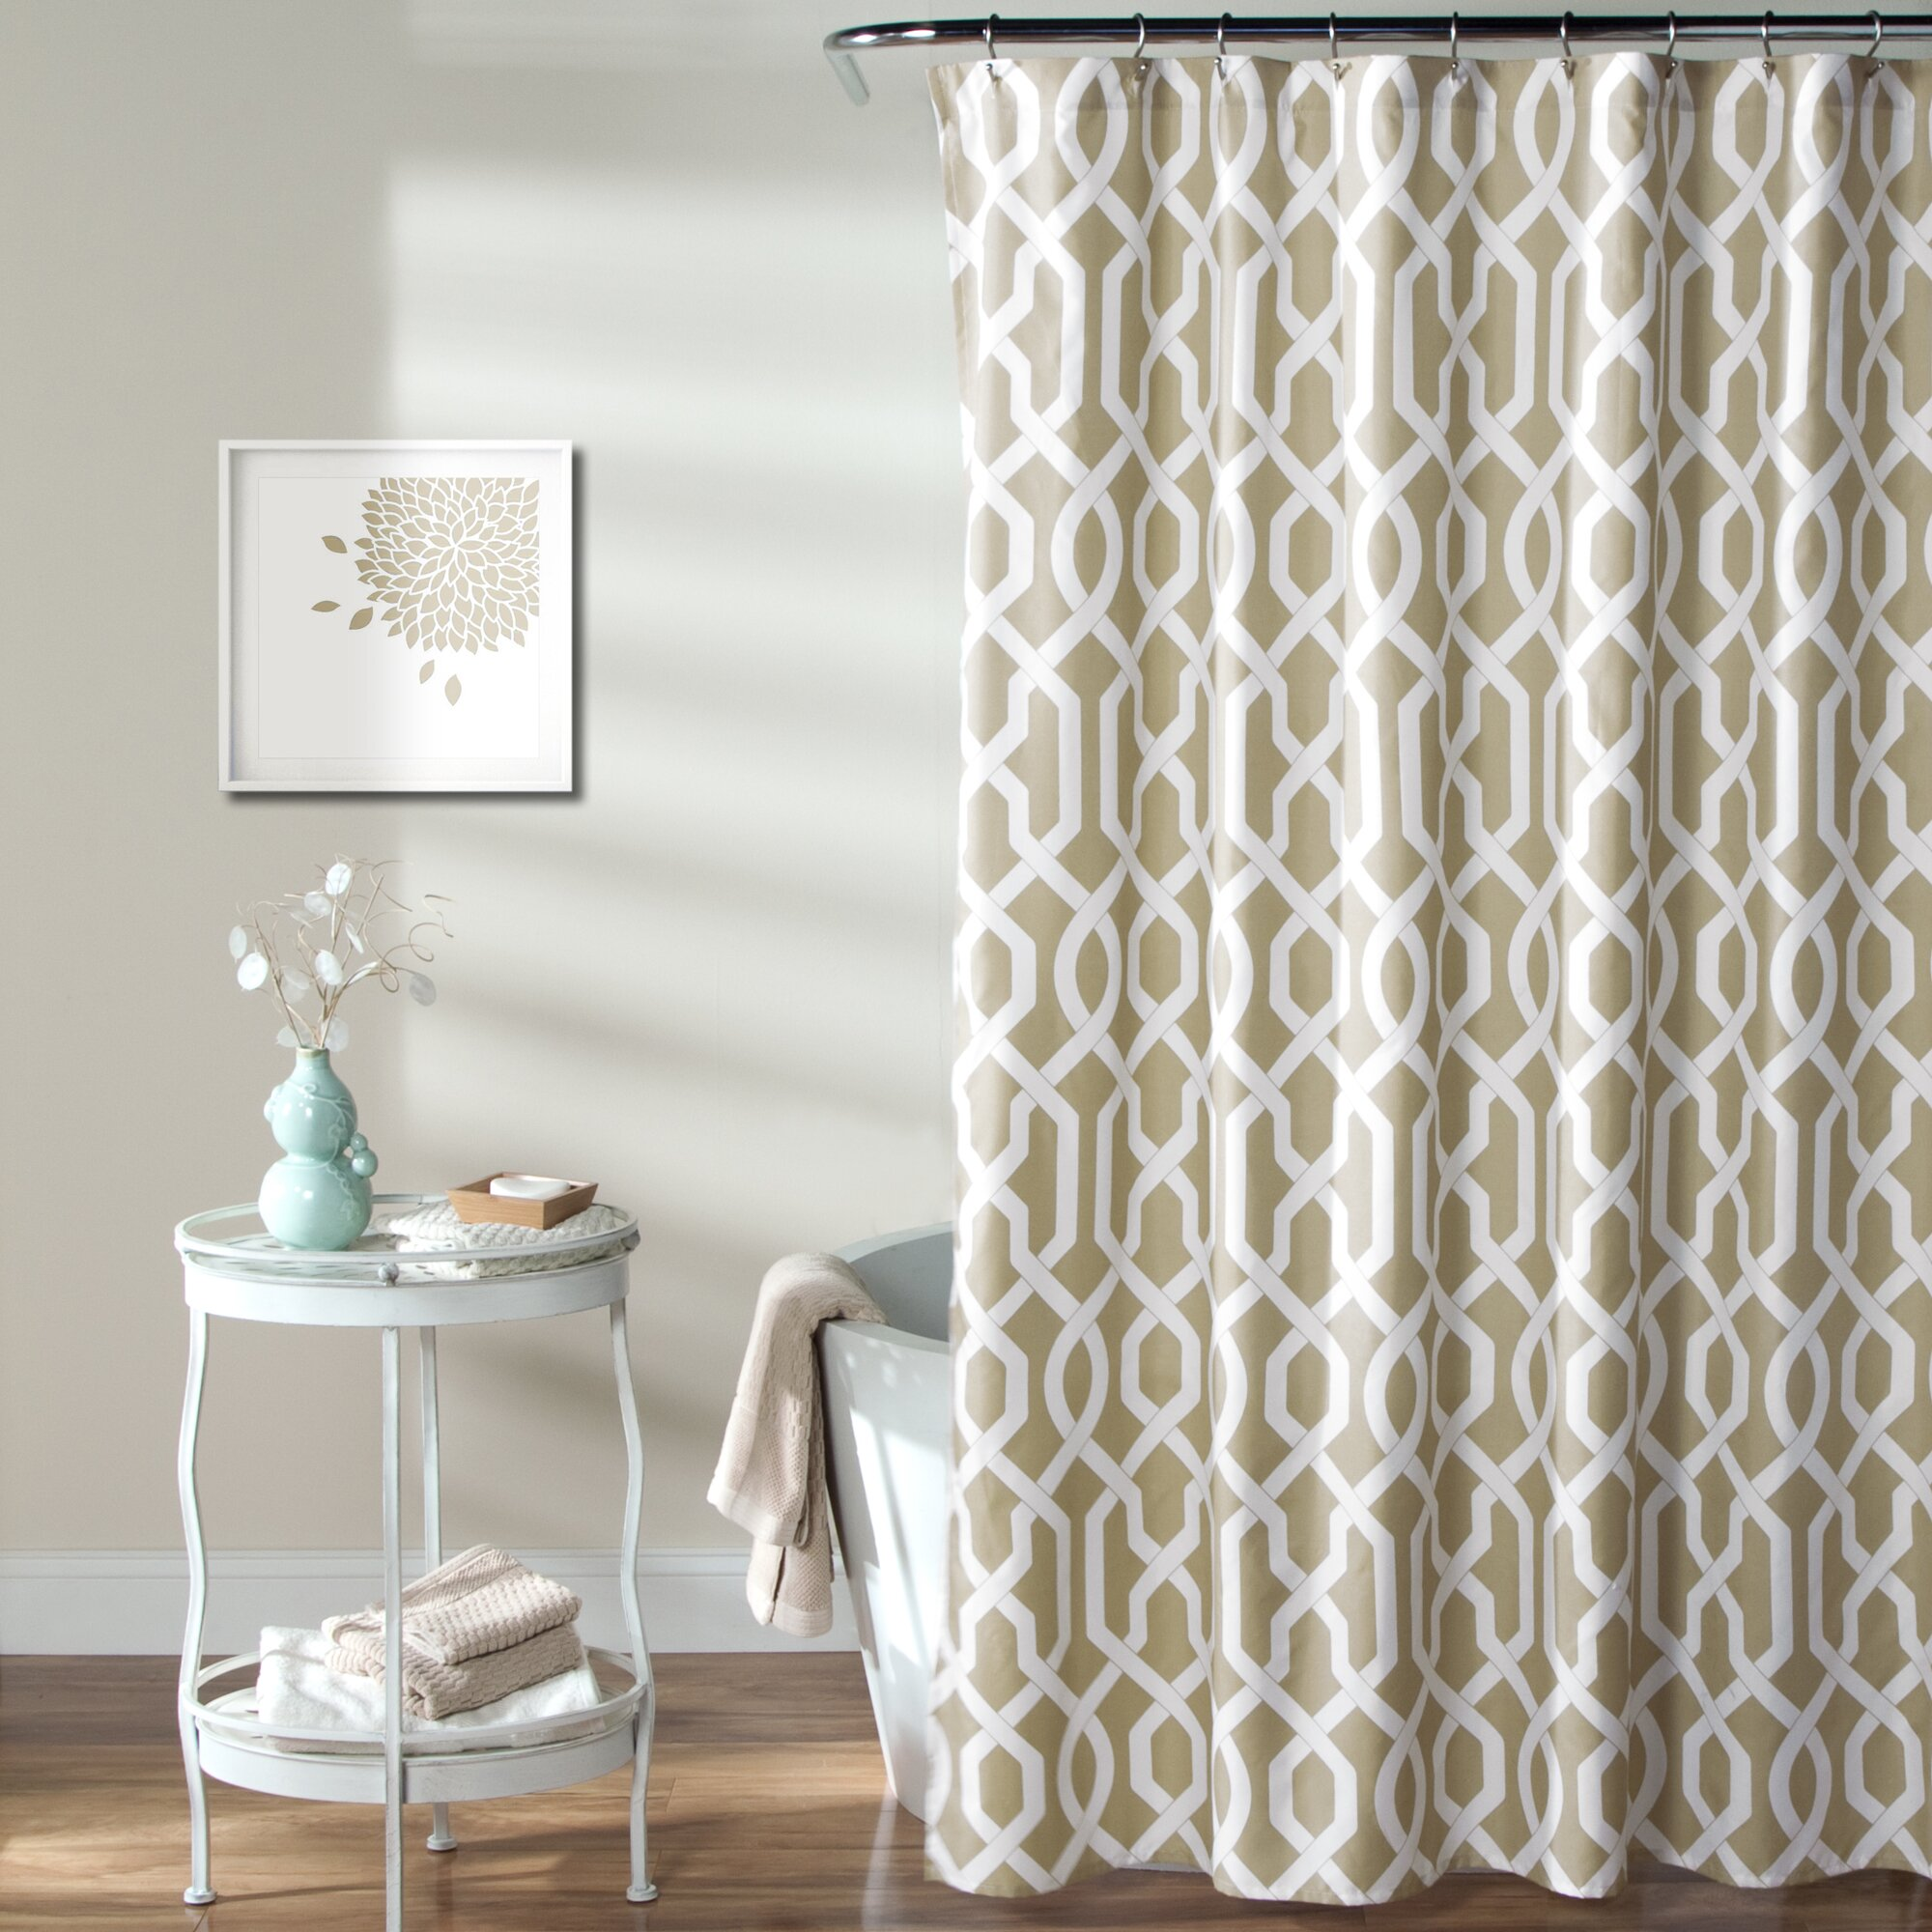 Chevron bathroom sets with shower curtain and rugs - Alcott Hill Reg Caledonia Shower Curtain